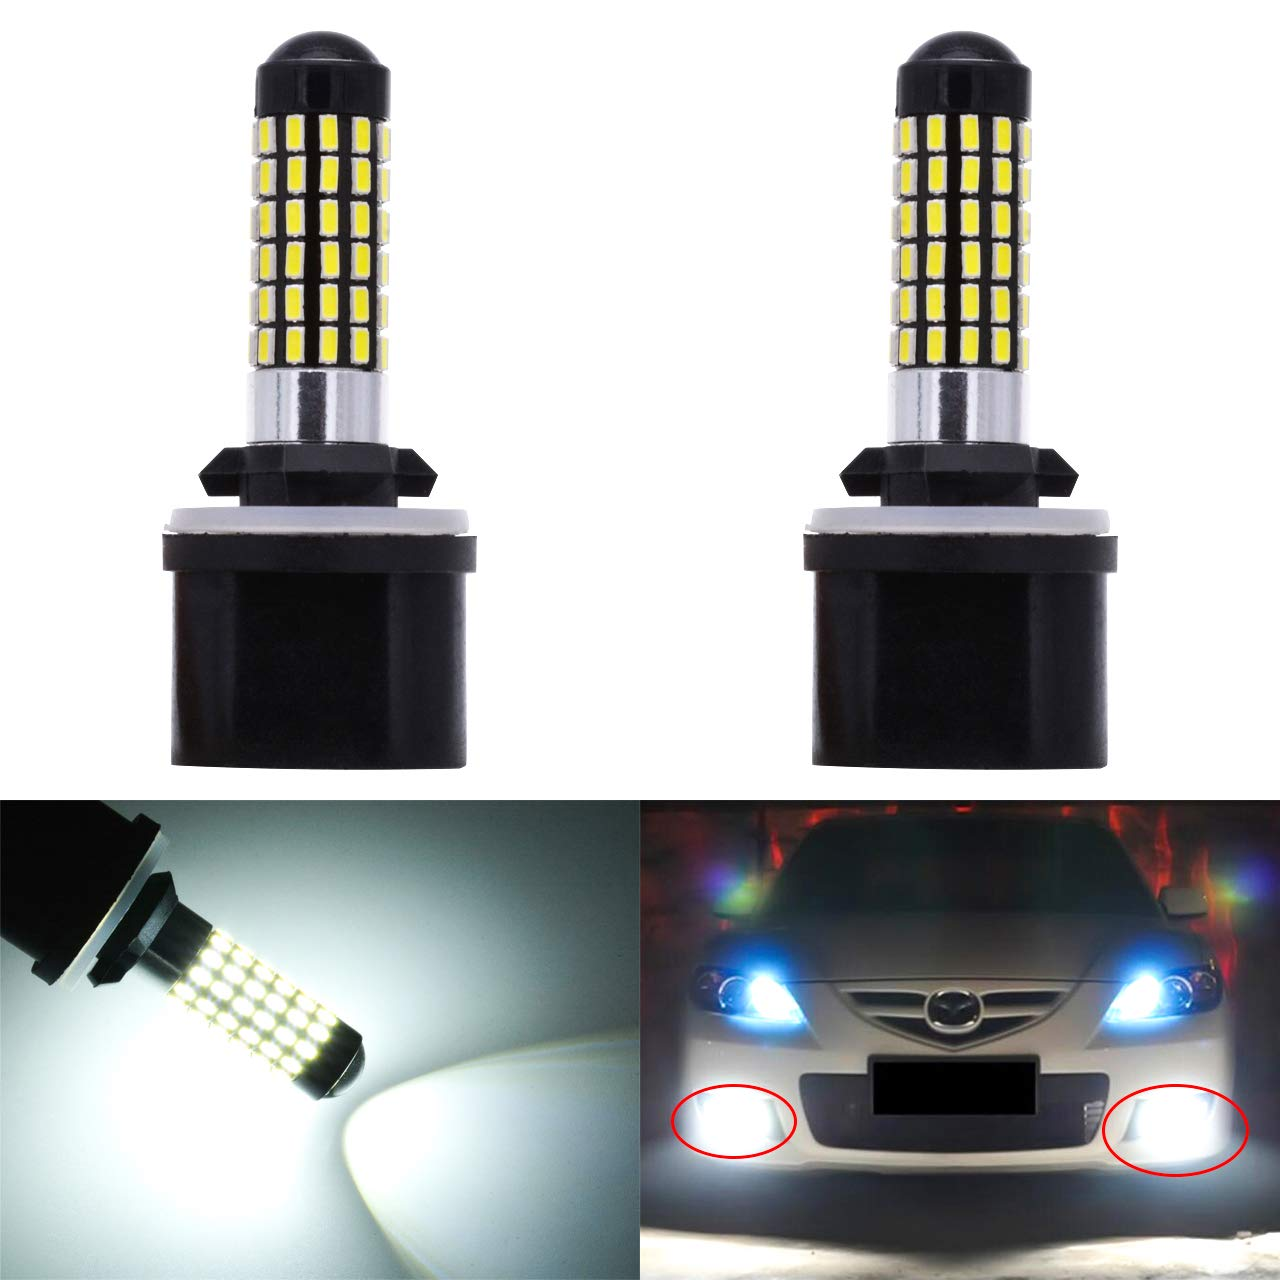 KaTur Extremely Bright 900 Lumens 3014 78-EX Chipsets 894 881 886 889 896 898 Led Bulb DRL Fog Lights Xenon White (Pack of 2) 2AM-CL-374-881-White